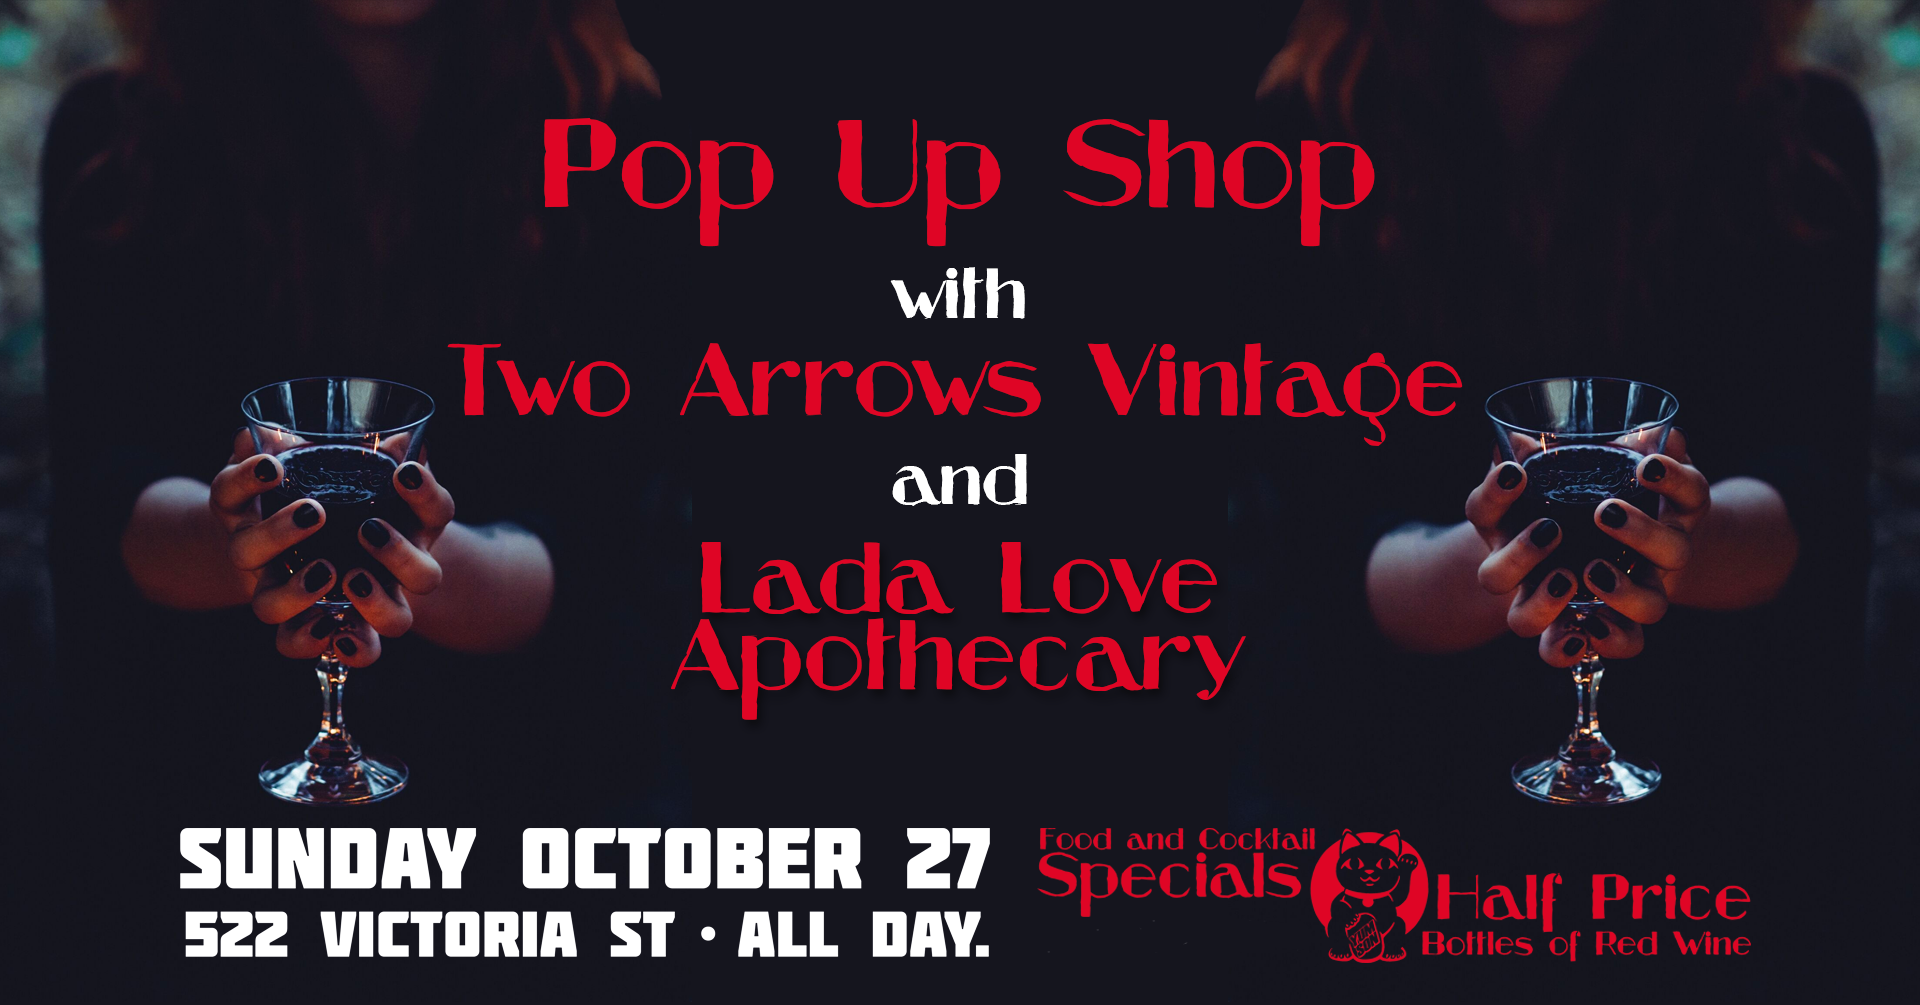 Two Arrows Vintage Pop Up Shop w/ Lada Love Apothecary @ Yum Son